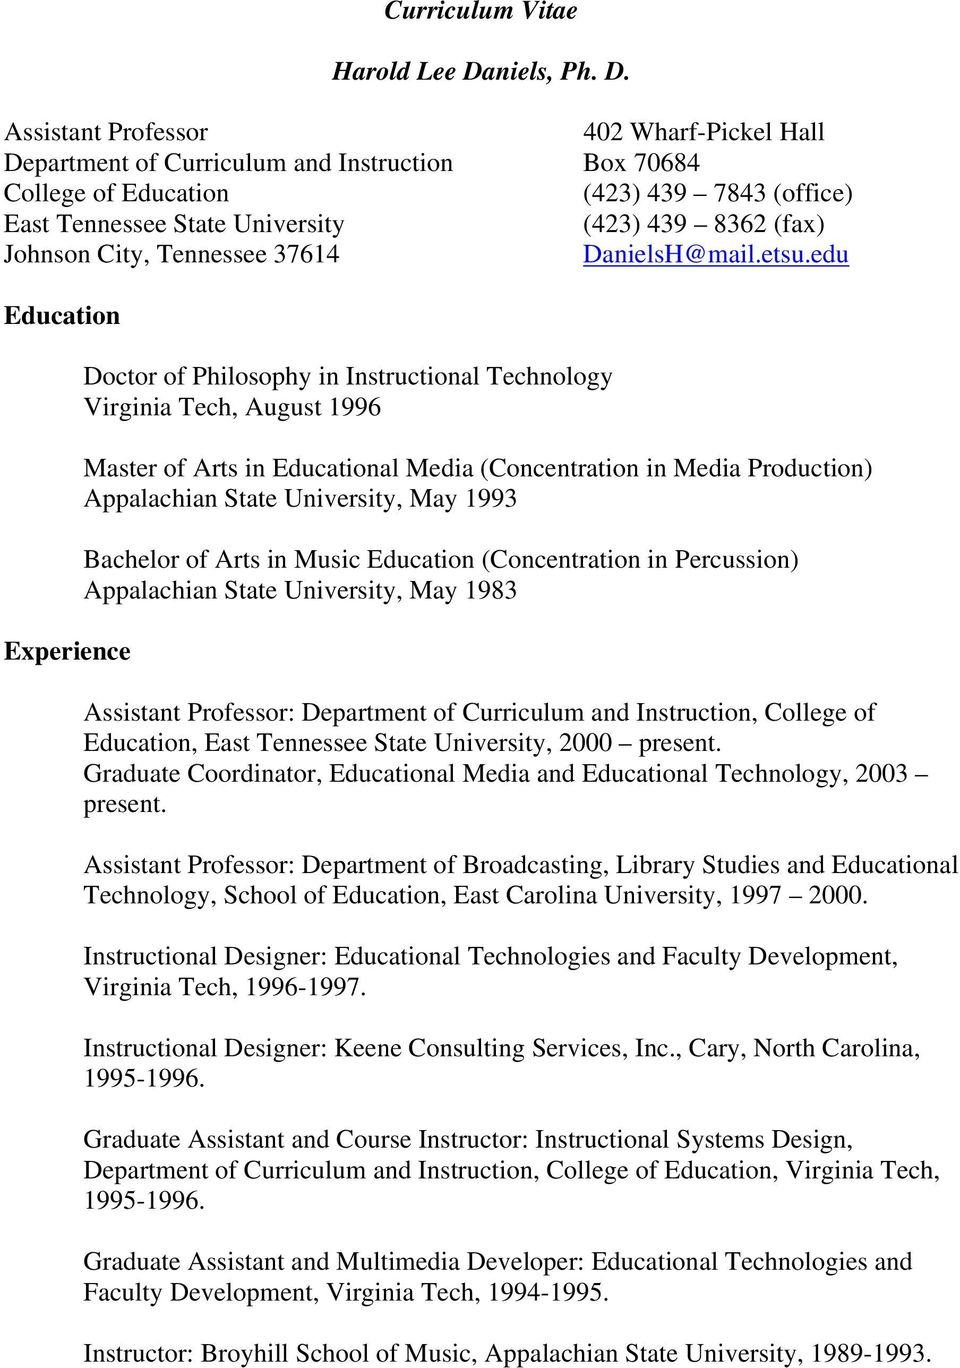 Assistant Professor 402 Wharf-Pickel Hall Department of Curriculum and Instruction Box 70684 College of Education (423) 439 7843 (office) East Tennessee State University (423) 439 8362 (fax) Johnson